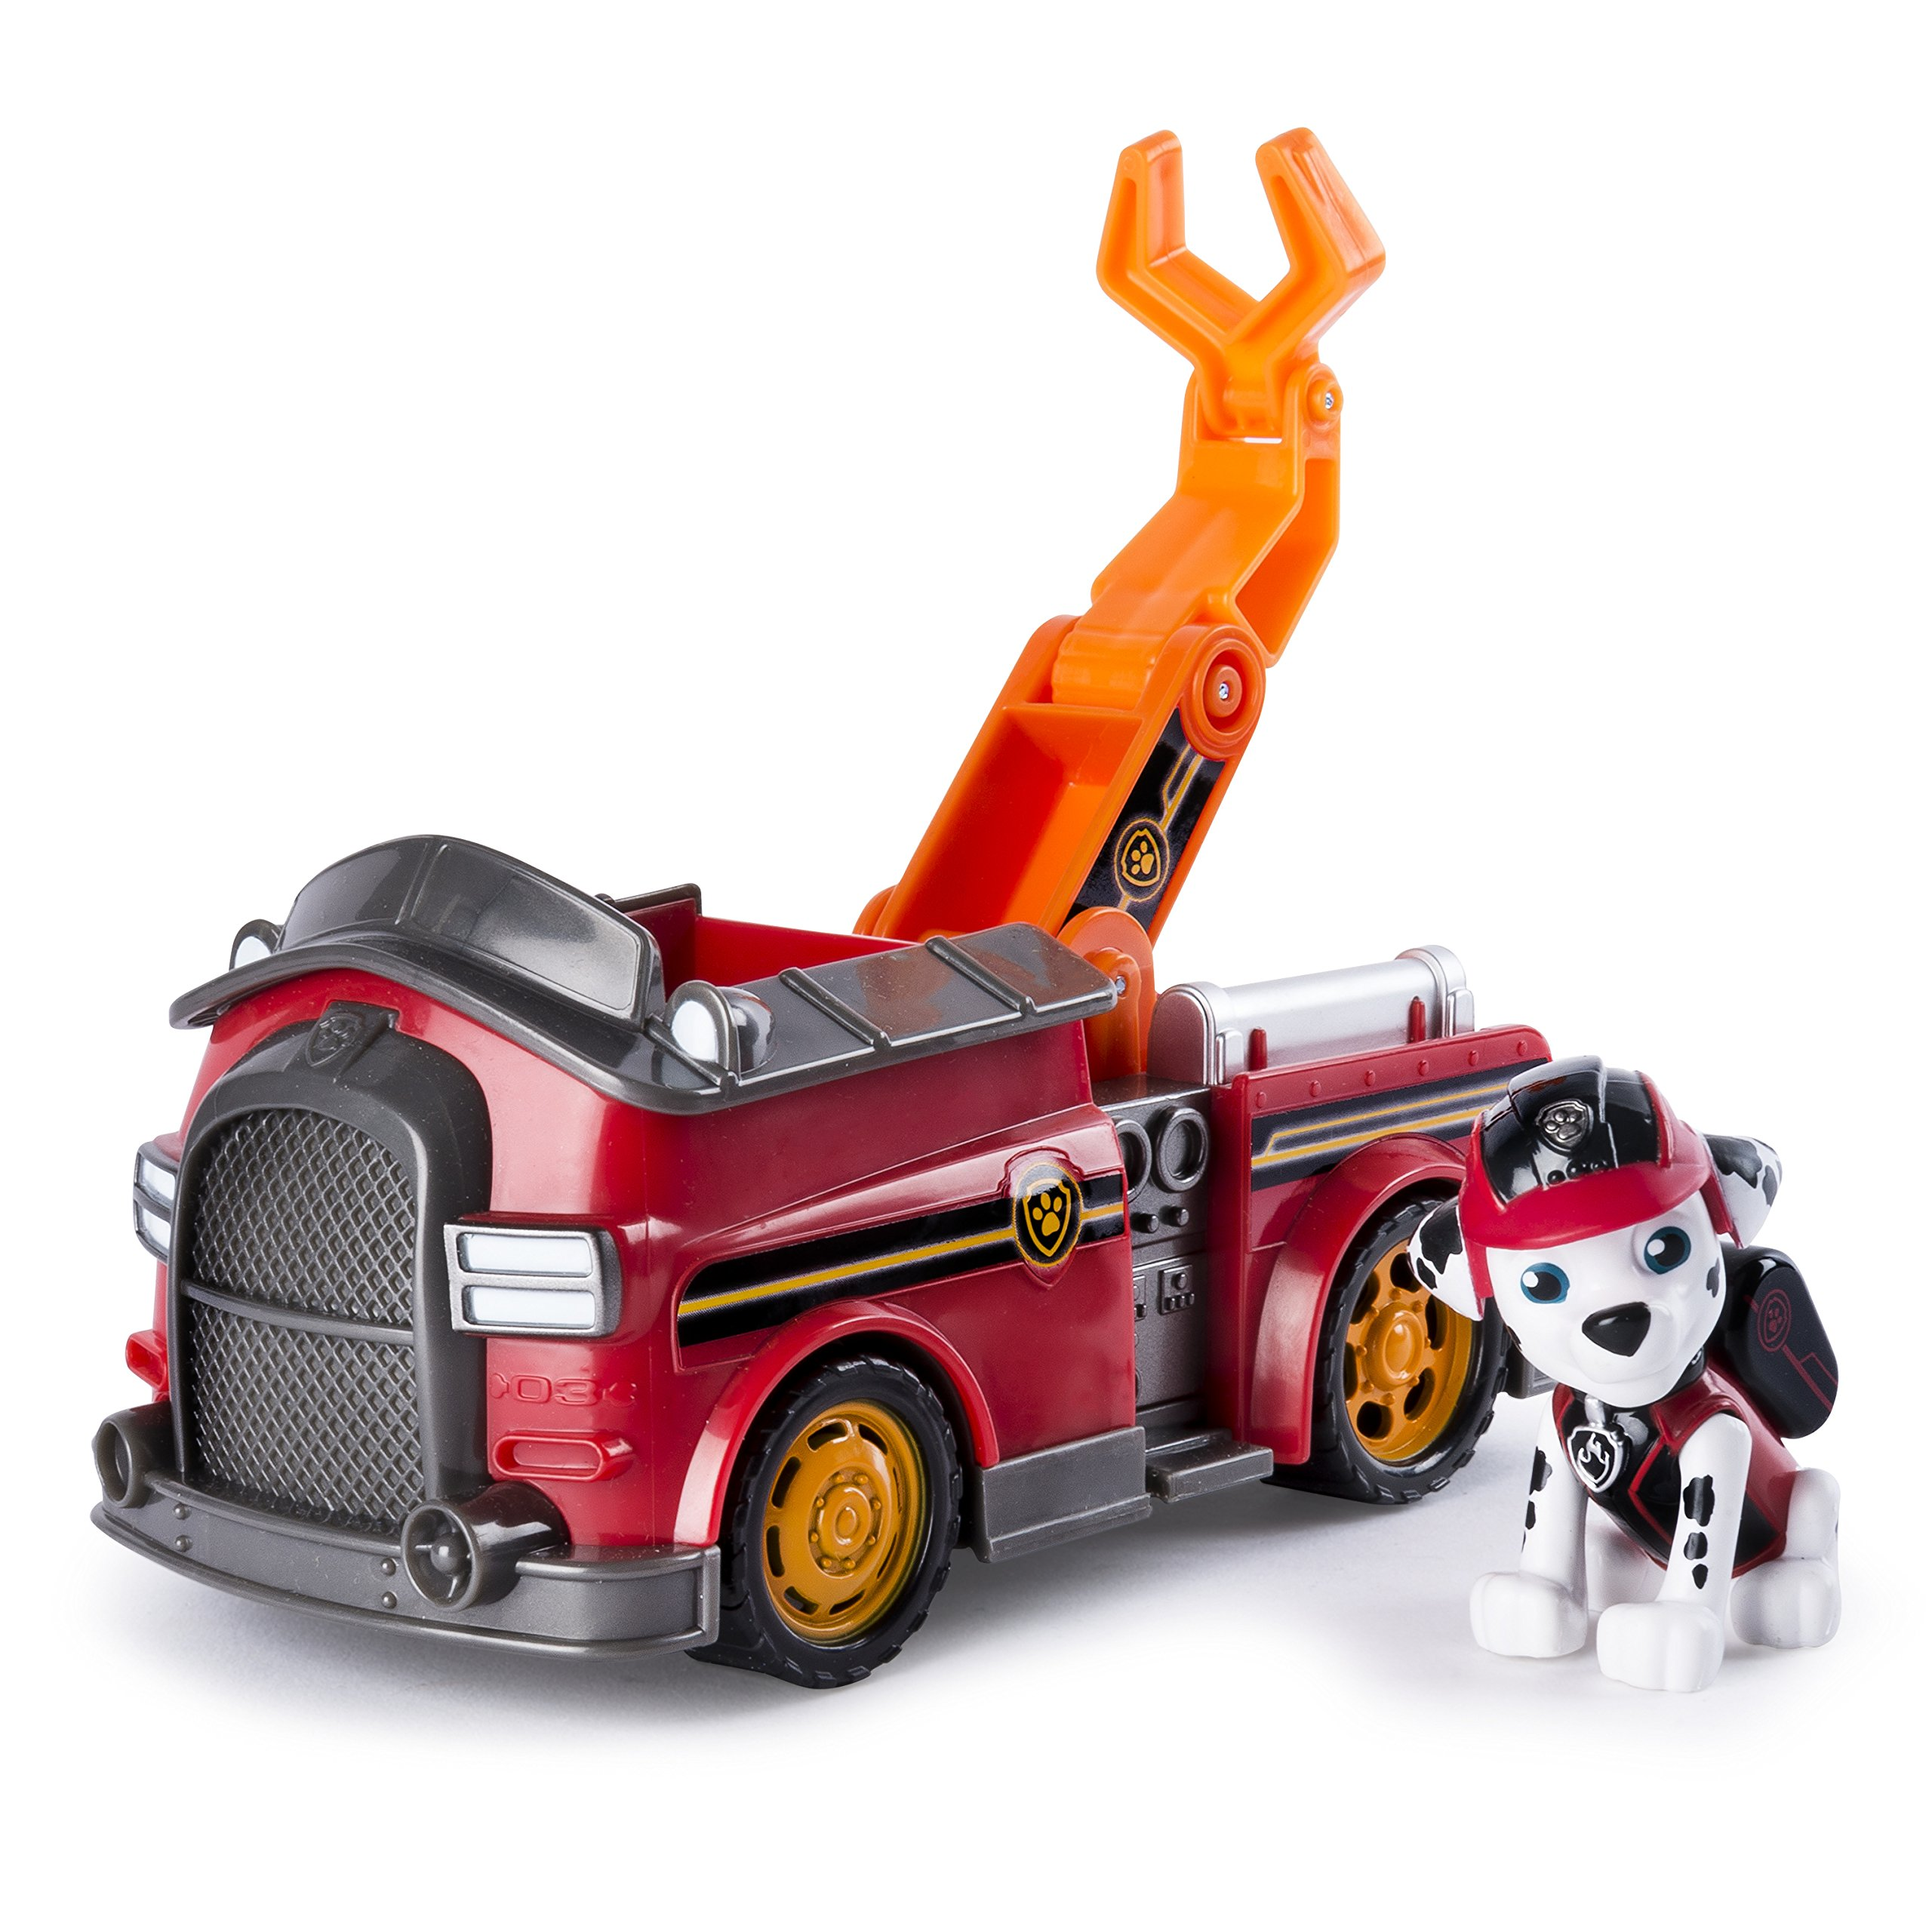 Paw Patrol 6037967 Paw Vehicle Marshall S Mission Fire Truck As Seen On Tv Uk Products